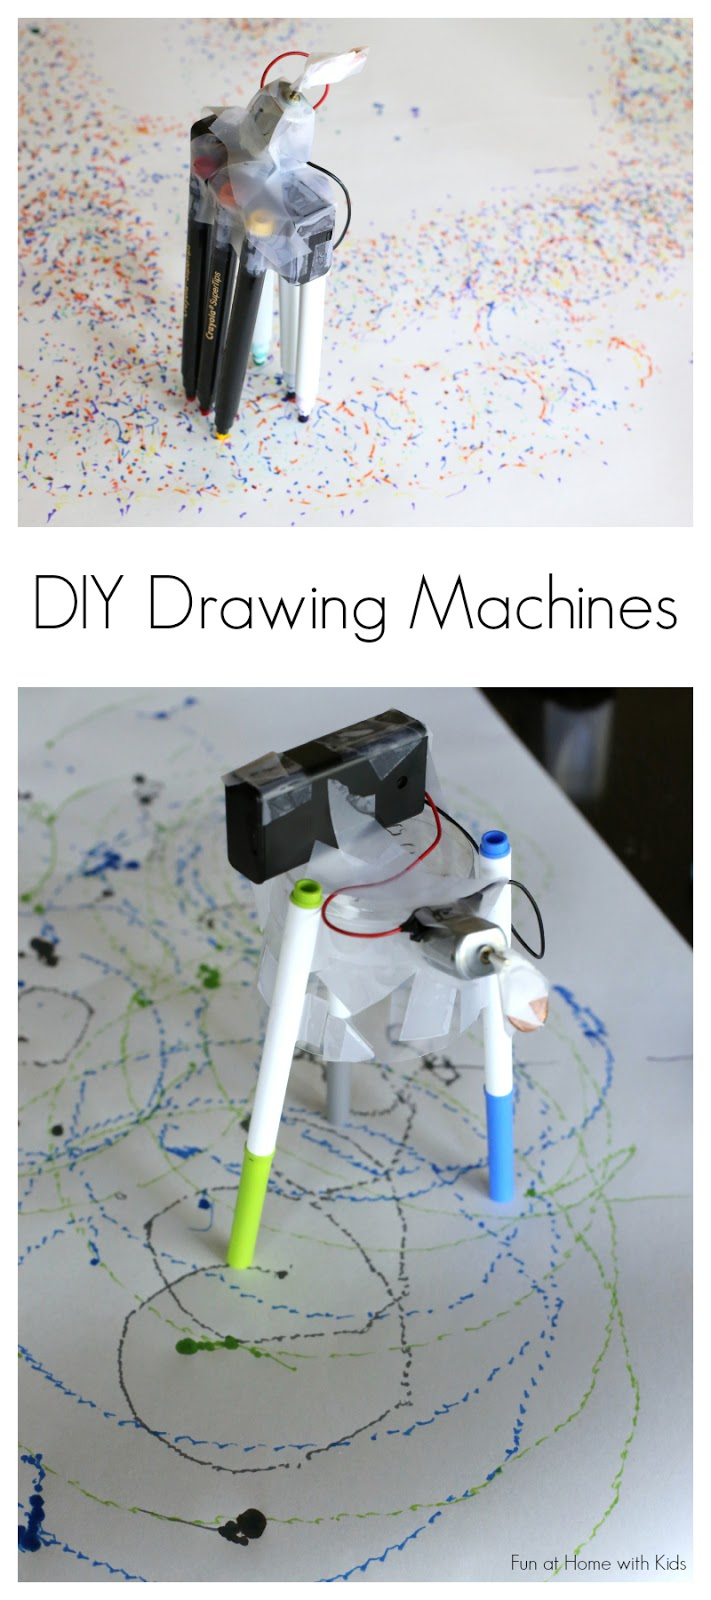 Learn how to make DIY Drawing Machines from Tinkerlab: A Hands-on Guide for Little Inventors